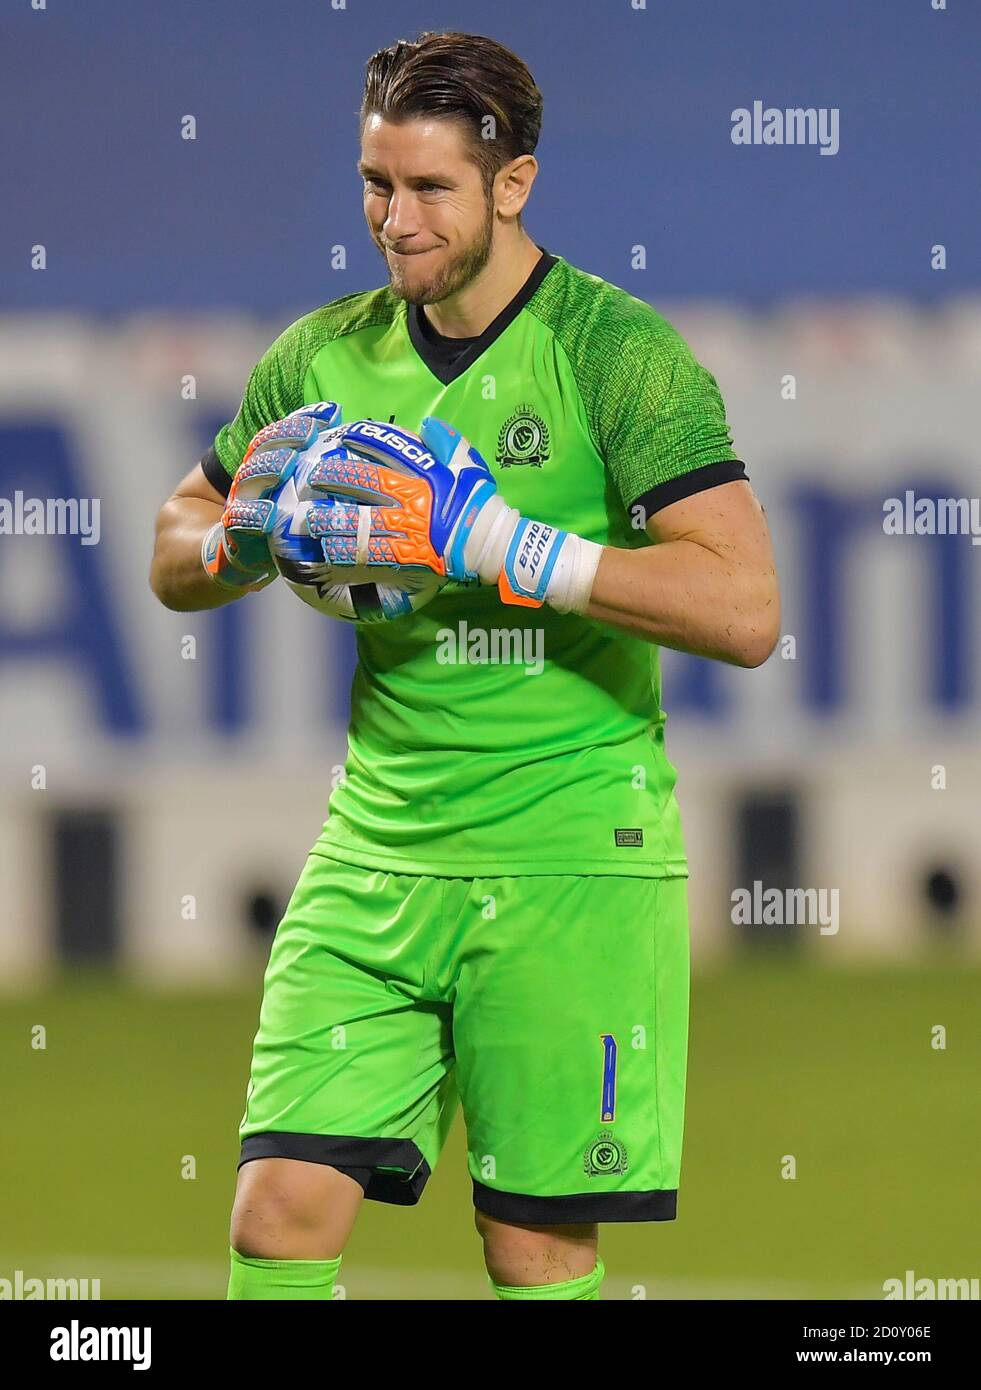 Doha Capital Of Qatar 3rd Oct 2020 Goalkeeper Brad Jones Of Al Nassr Reacts During The Penalty Shootout During The Afc Asian Champions League Semifinal Match Between Persepolis Fc Of Iran And